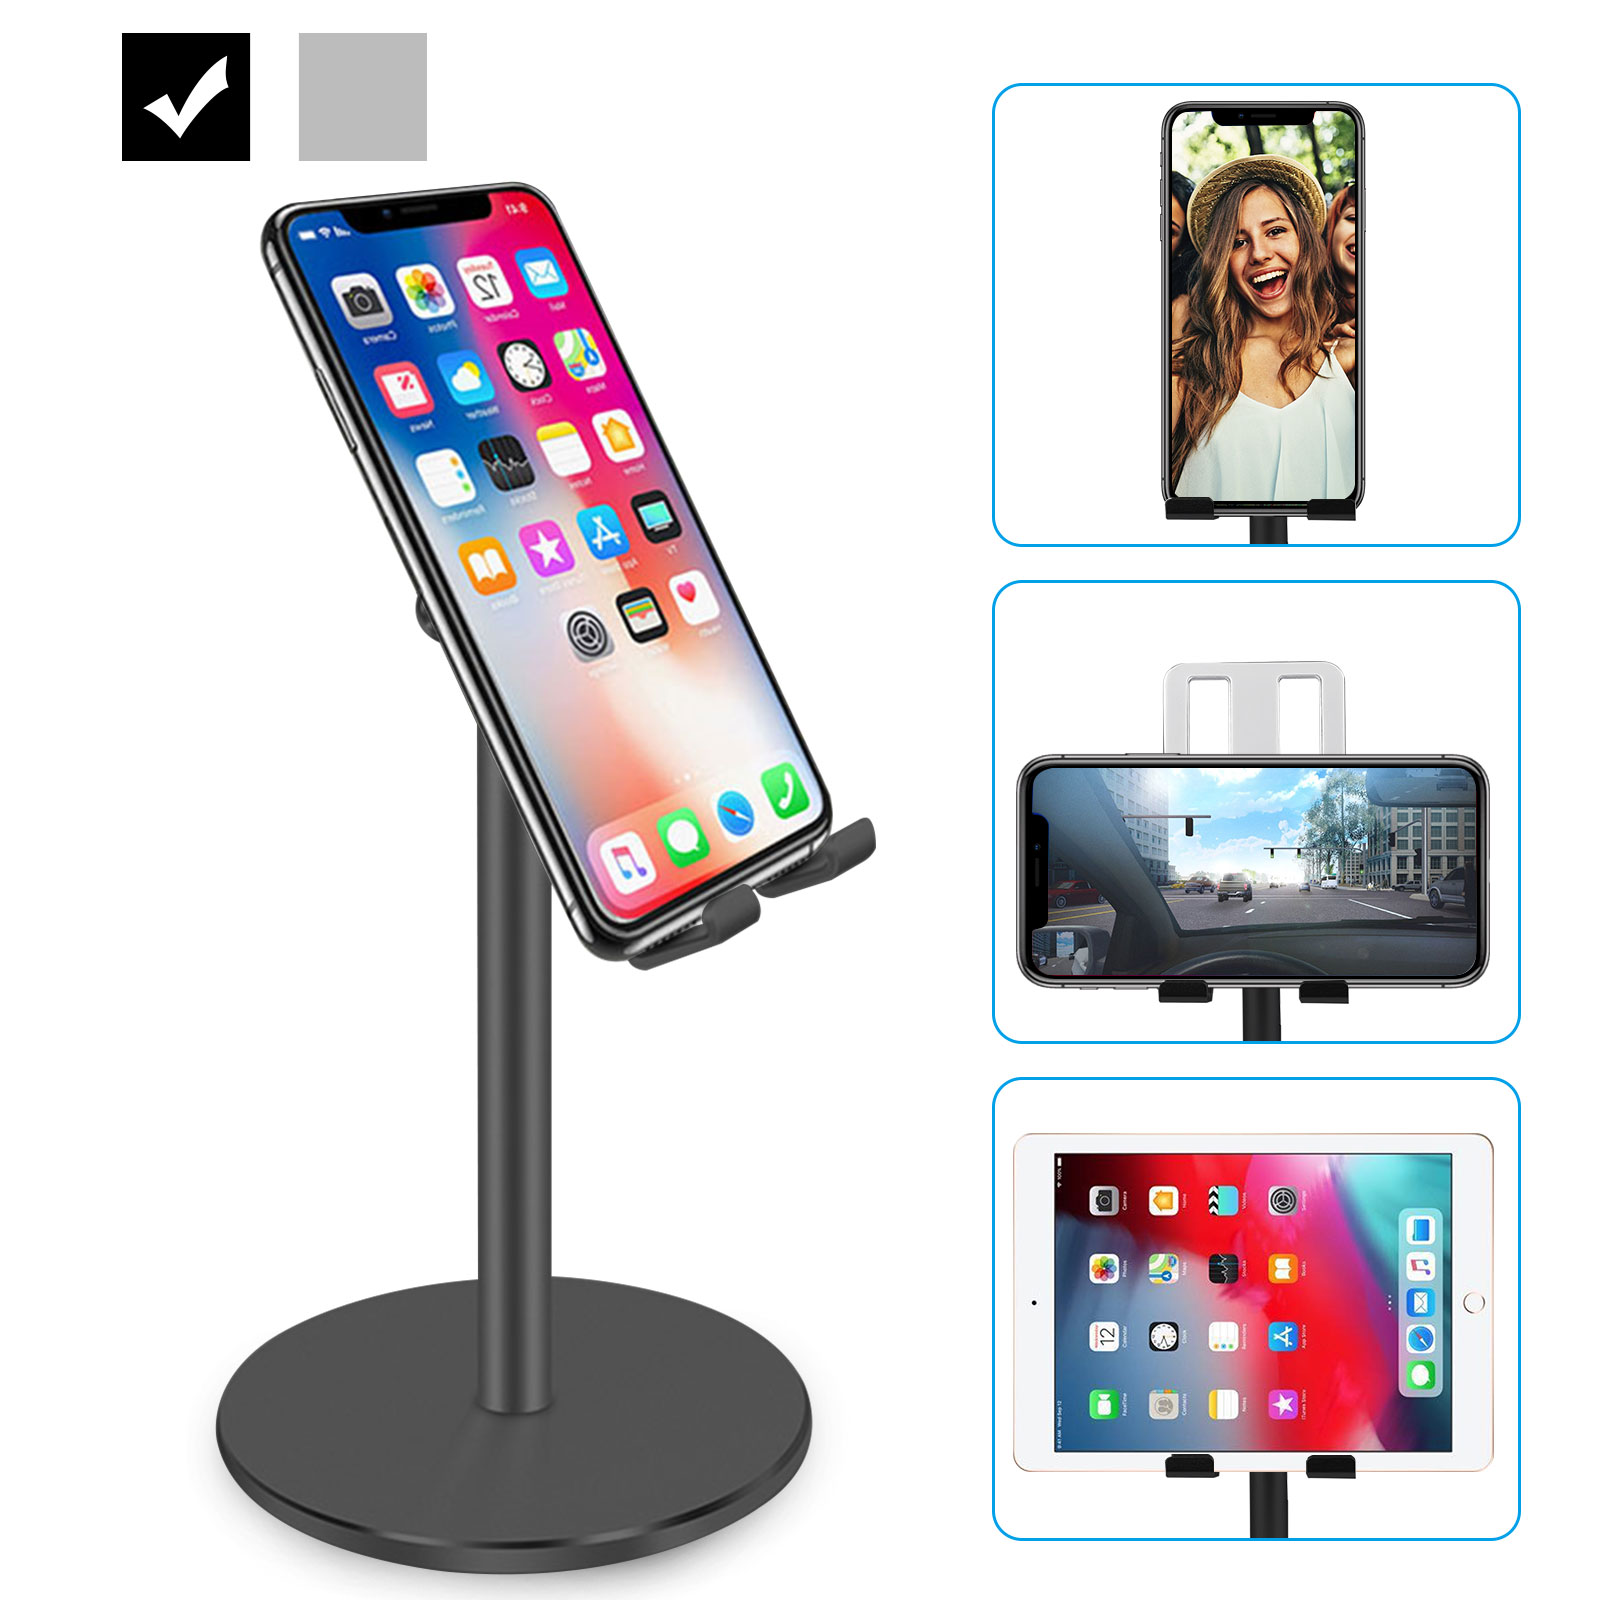 Desire2 View Cell Phone Stand Holder Mobile Phone Dock Compatible for iPhone Xs Max XR 8 Plus 6 7 6S X 5 Samsung Galaxy S10 S9 S8 S7 Edge S6 Android Smartphone Holder for Desk Adjustable Foldable